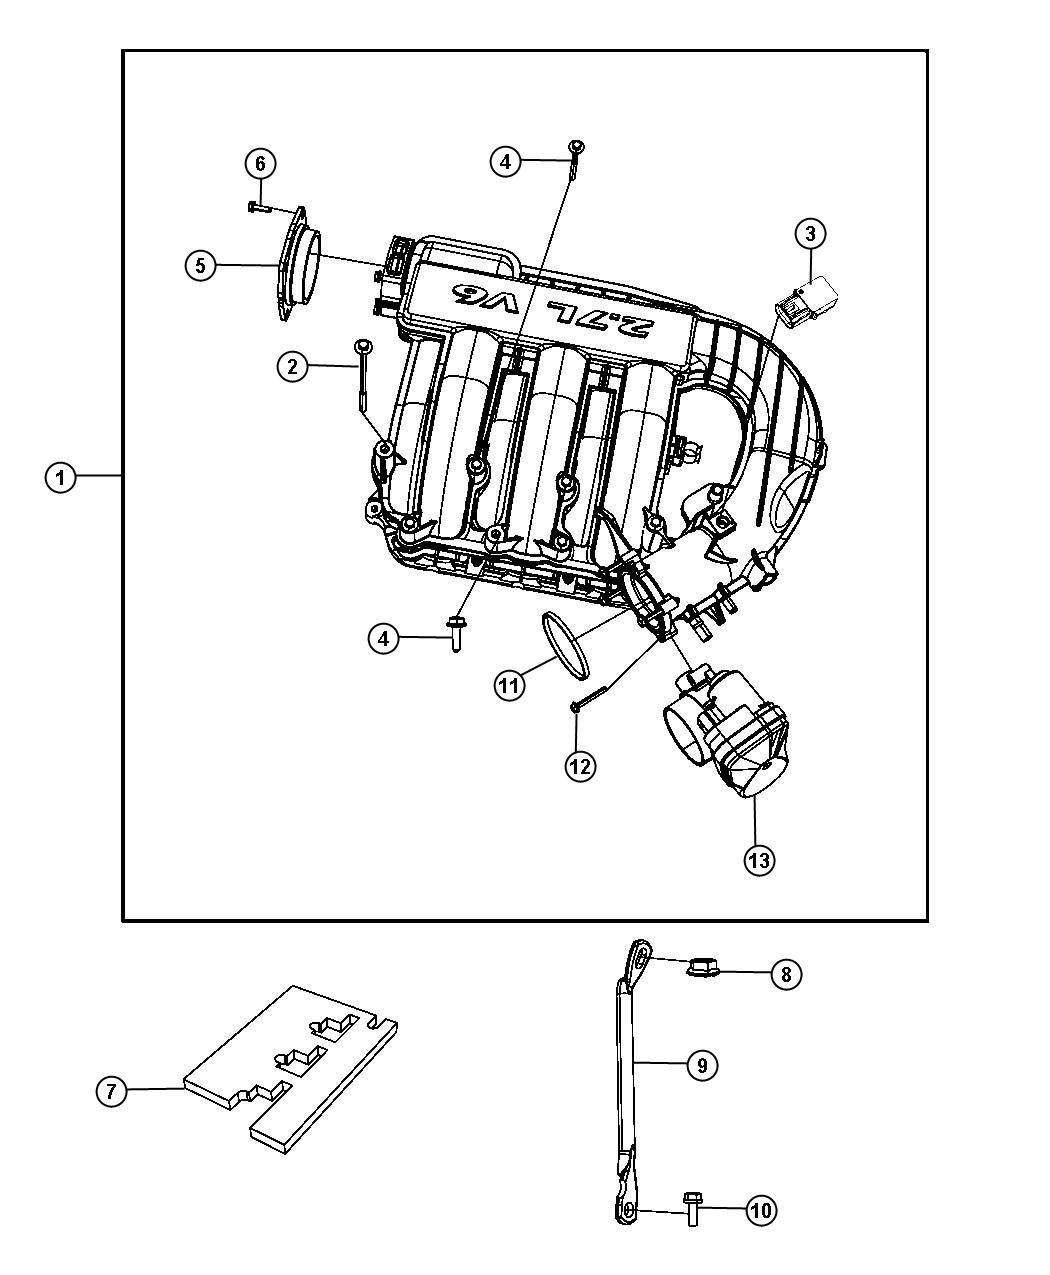 1999 honda accord fuse box diagram in addition 96 vw jetta engine diagram also t6701873 need